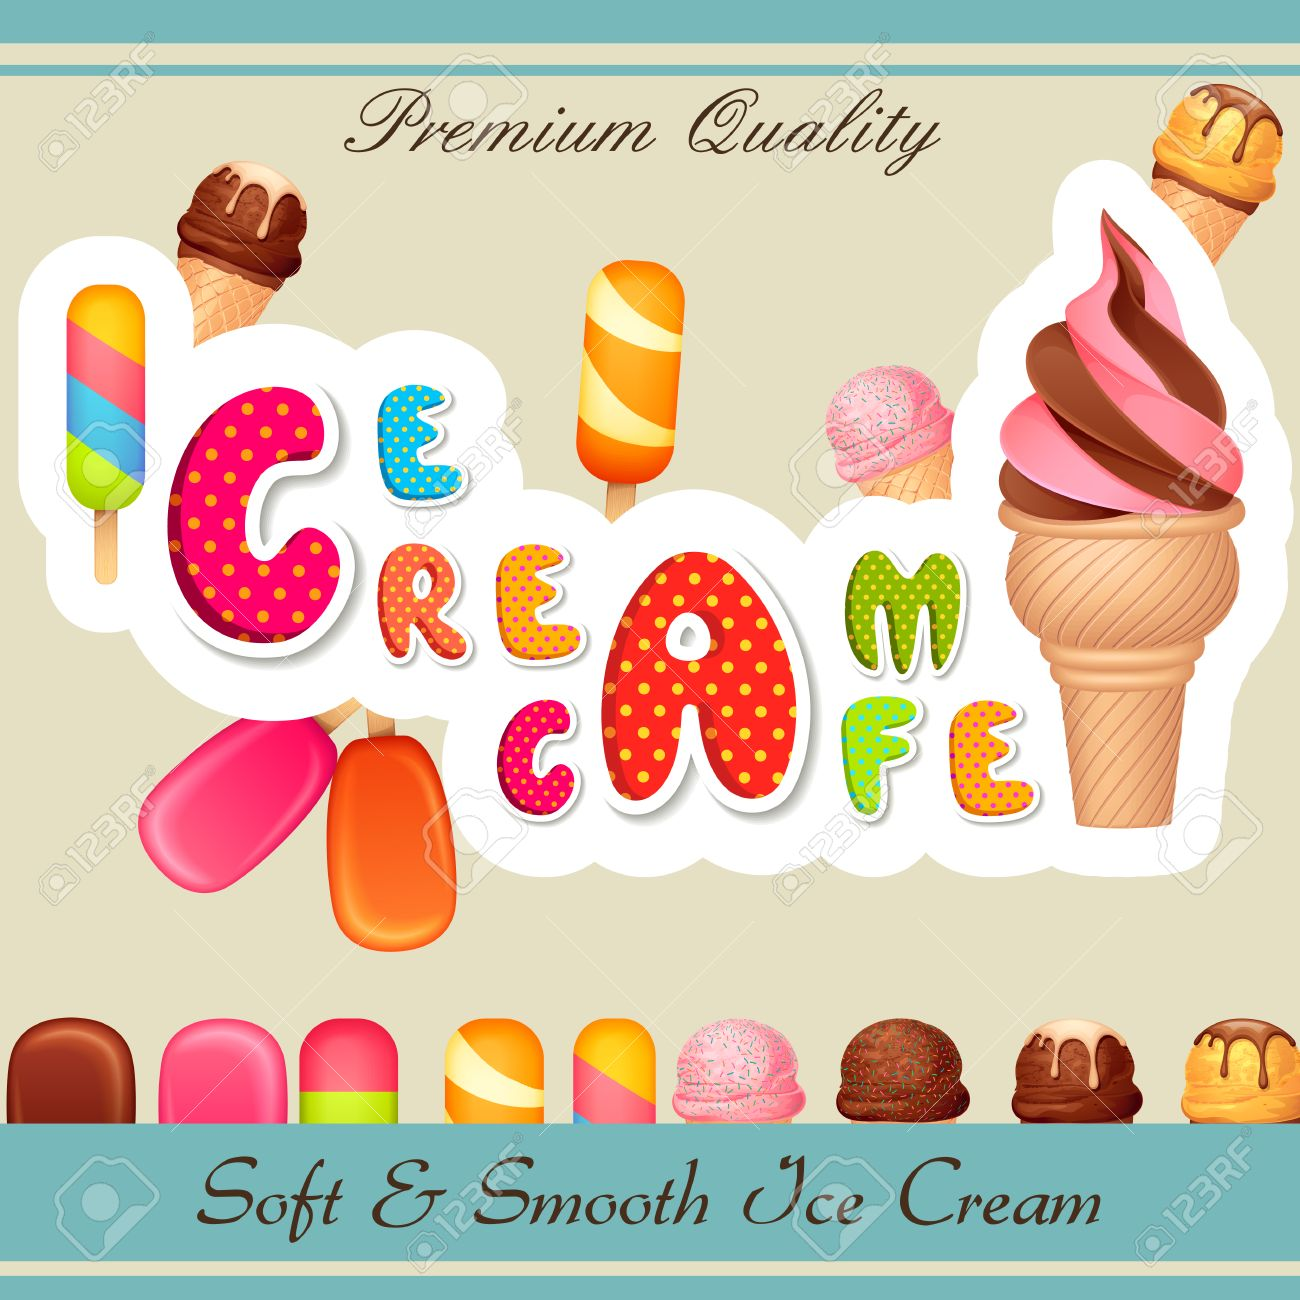 1,671 Icecream Shop Stock Illustrations, Cliparts And Royalty Free ...